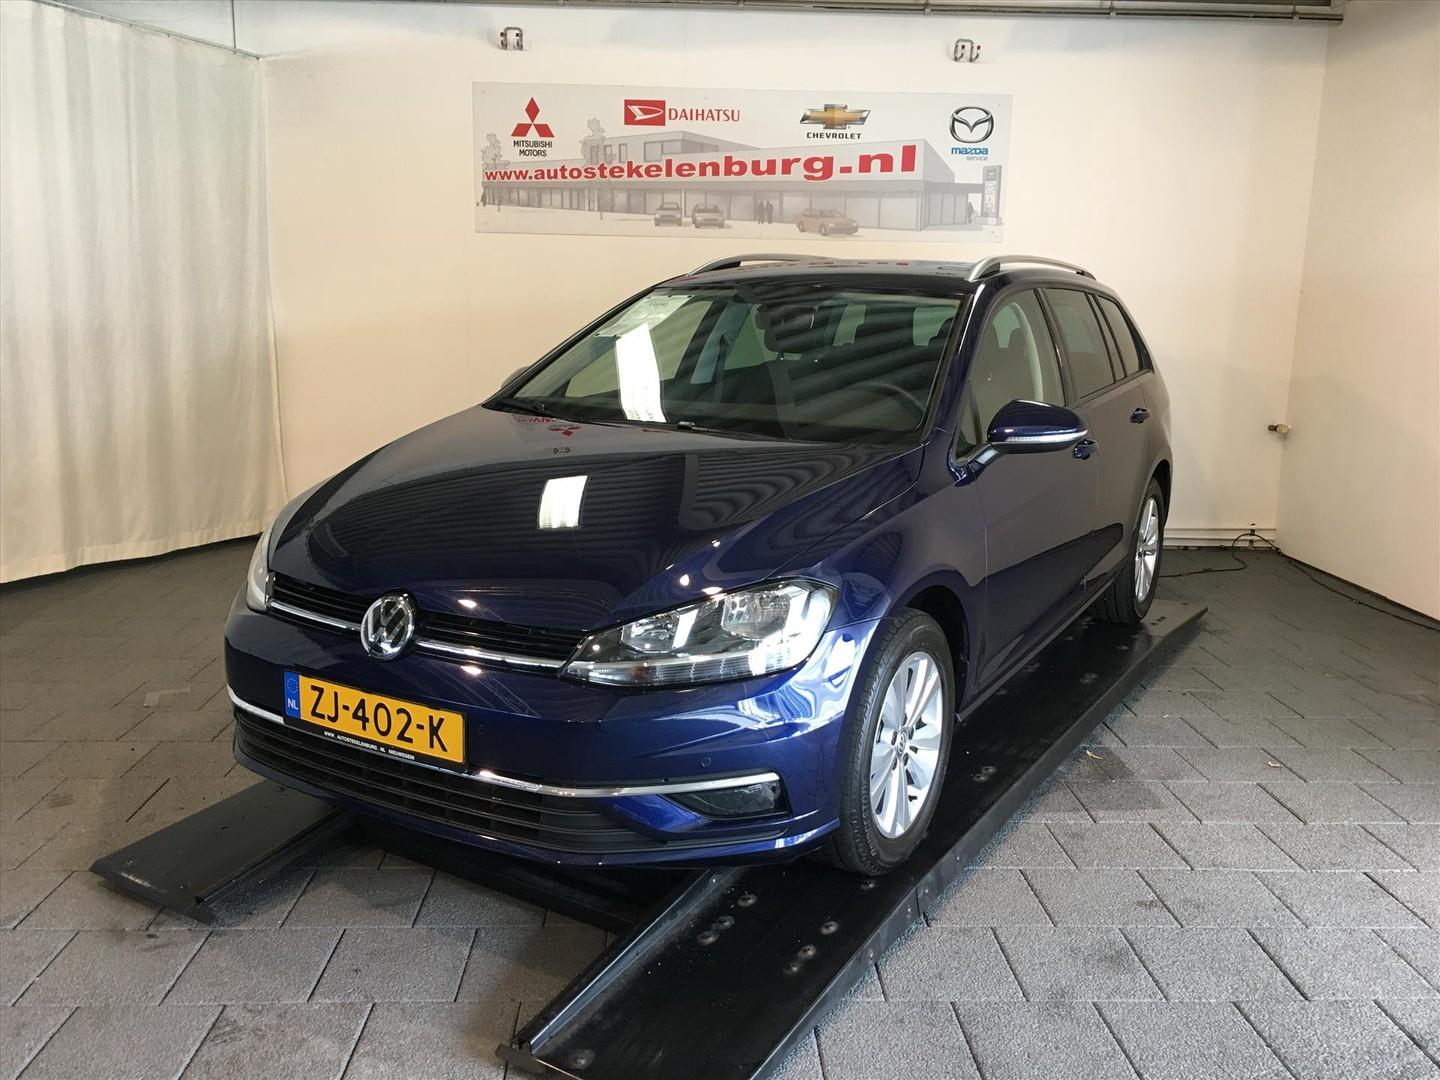 Volkswagen Golf Vii 1.6 comfortline business inc winterbanden